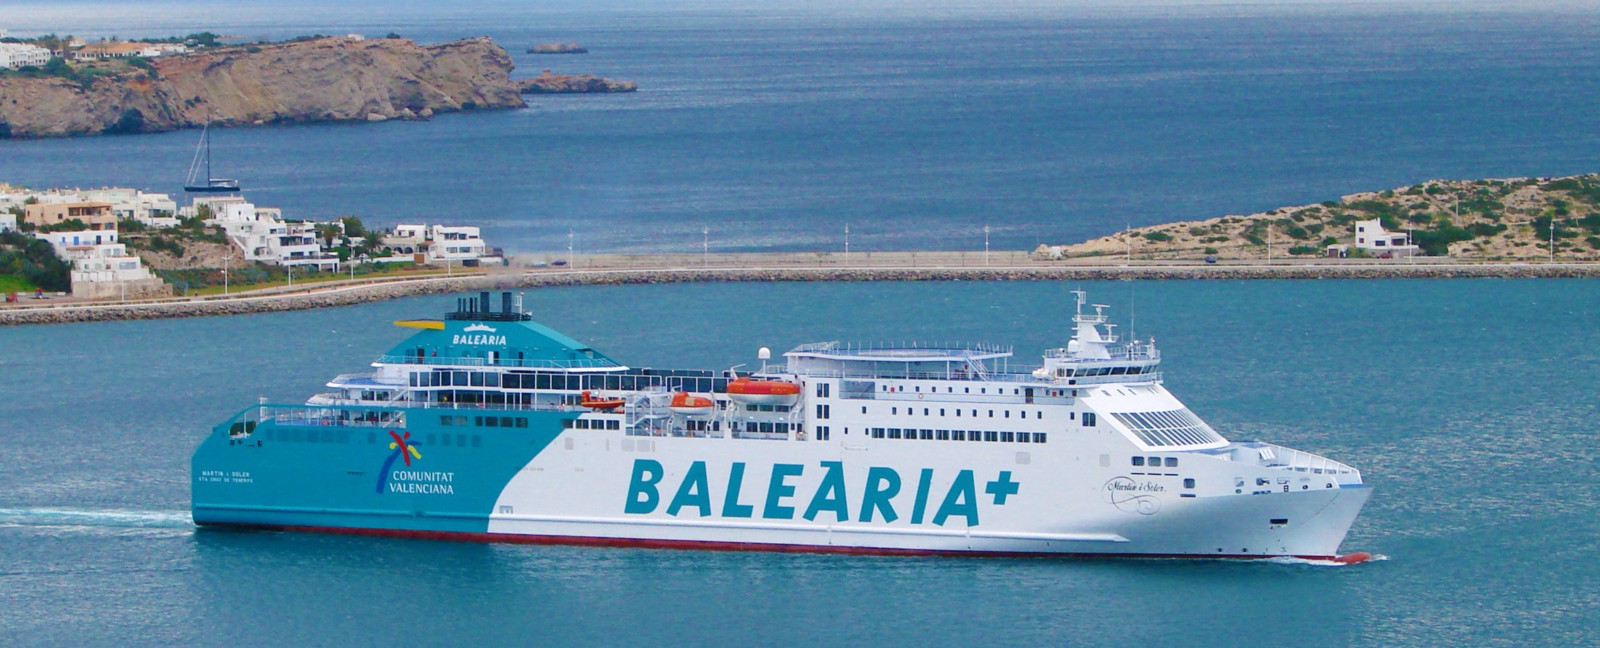 Balearia—company that offered the best value for aCar+Caravan traveller